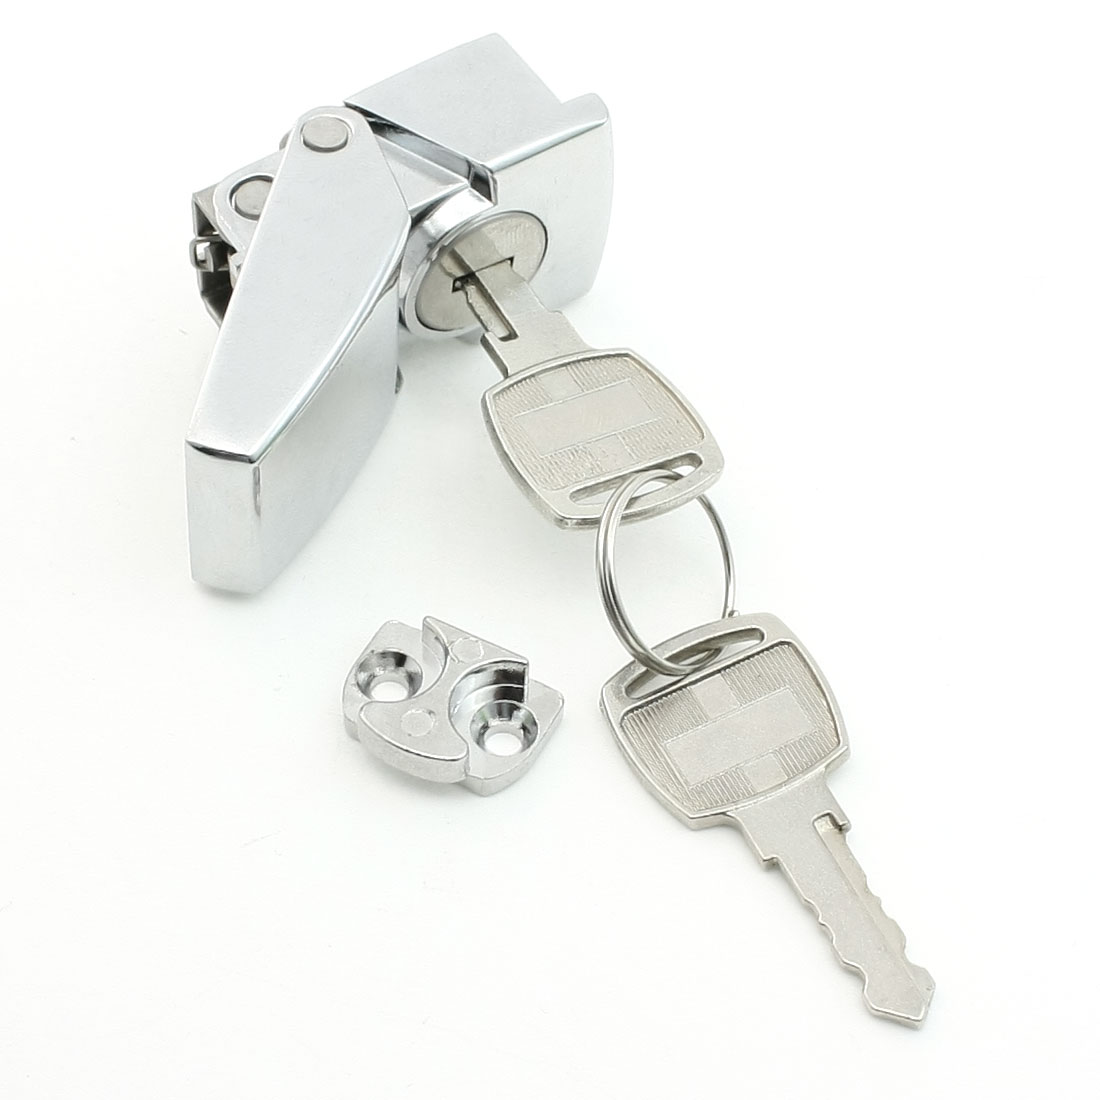 Hardware Silver Tone Keyed Lock for Showcase Cabinet Glass Door